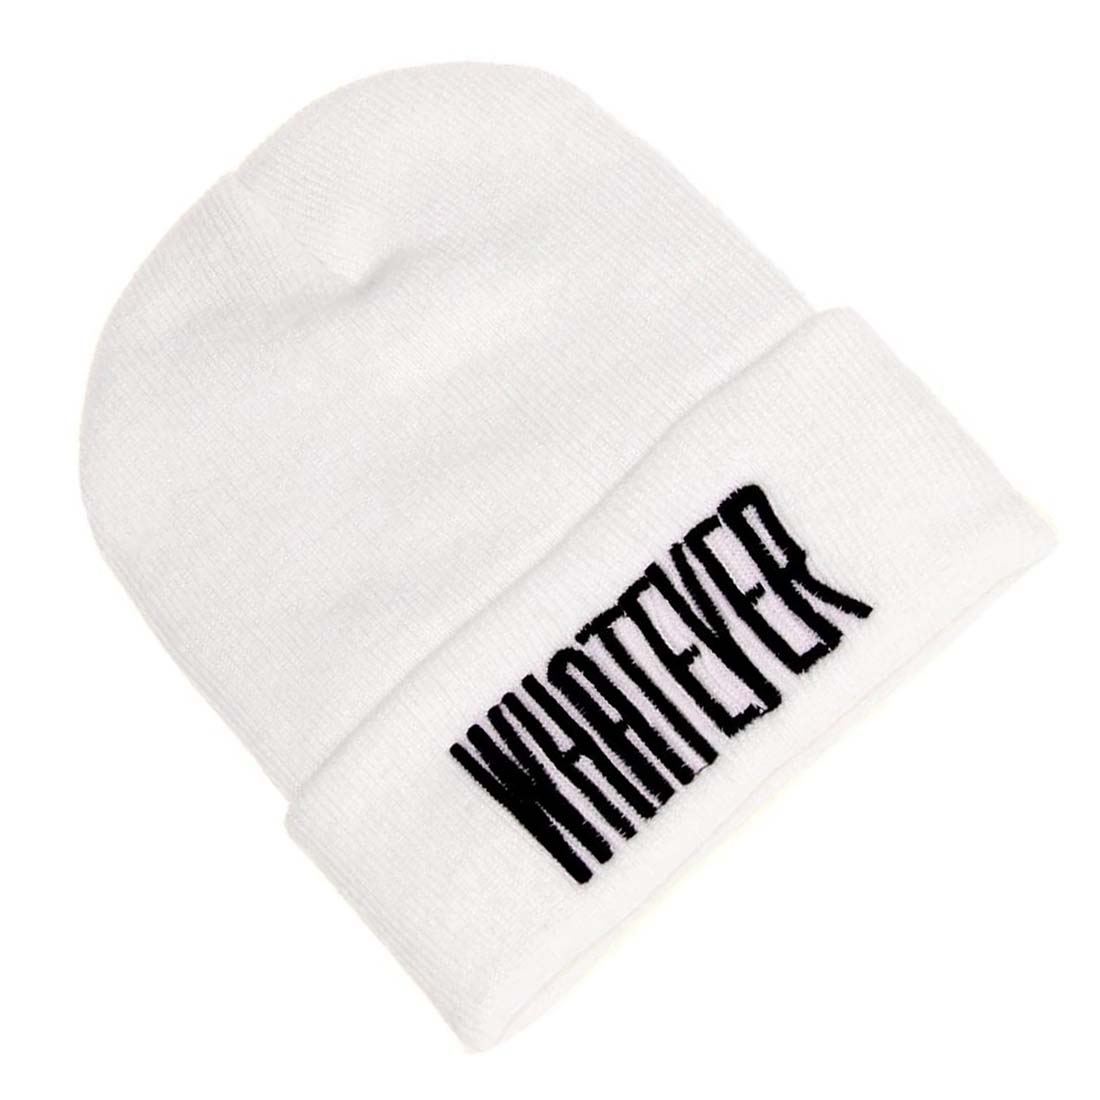 Winter Whatever Beanie Hat And Snapback Men And Women Cap (White) shocking show 2016 new design winter black whatever beanie hat and snapback men and women cap